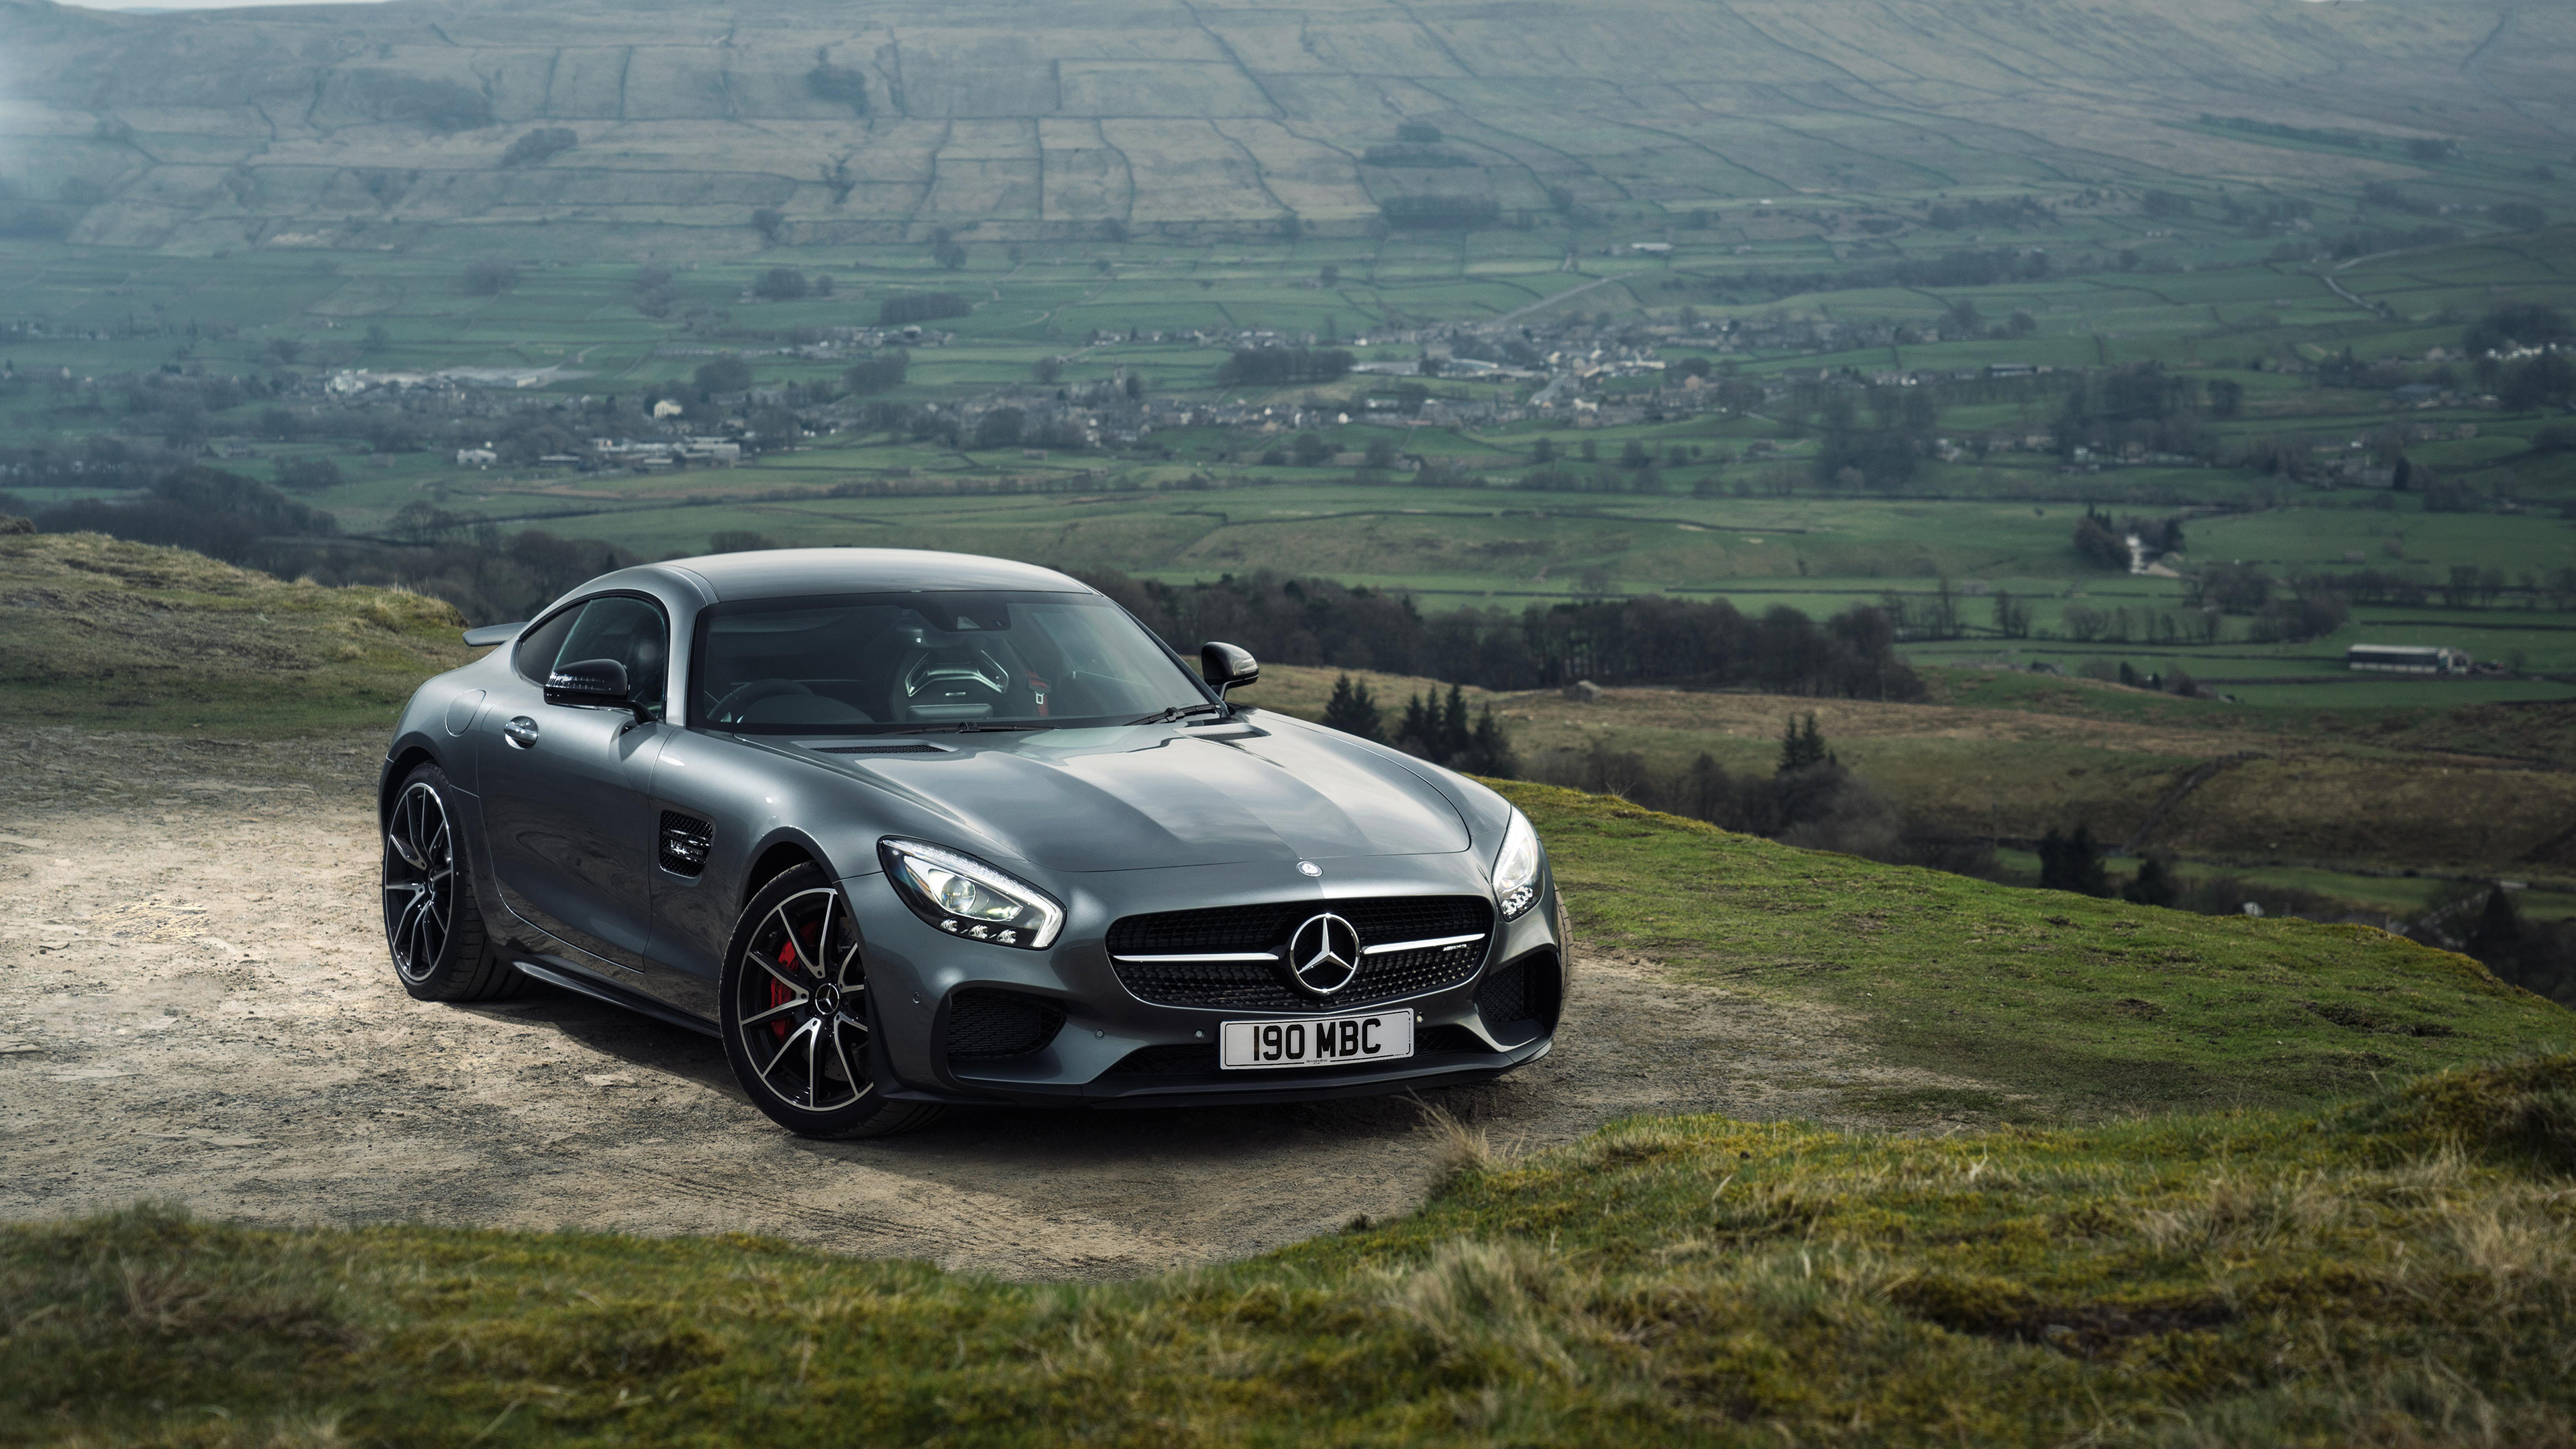 mercedes amg gt s 2015 wallpaper hd car wallpapers id. Black Bedroom Furniture Sets. Home Design Ideas